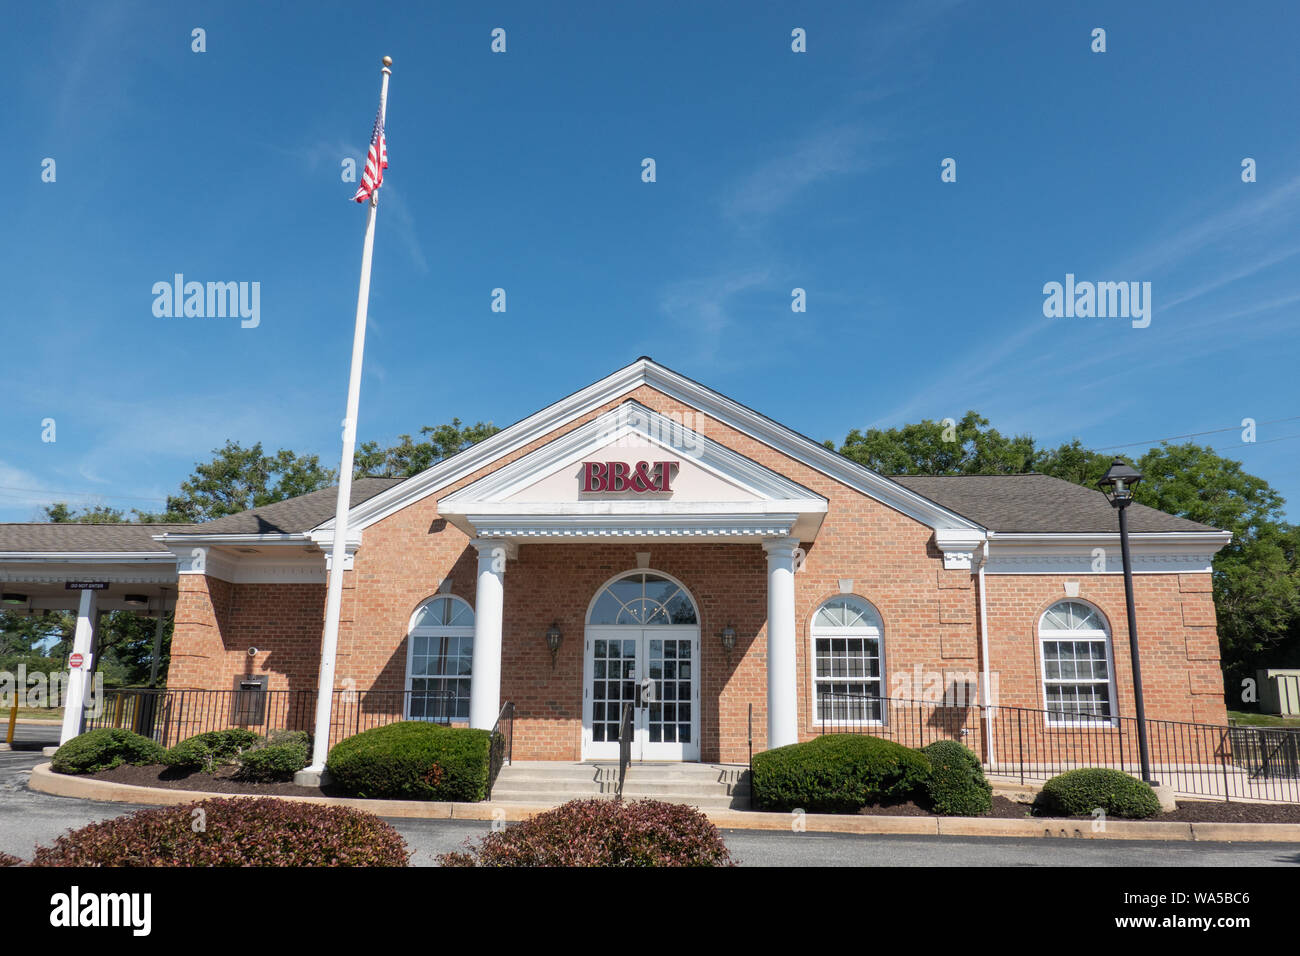 West Chester Pa August 11 2019 This Bb T Bank Is One Of 2 049